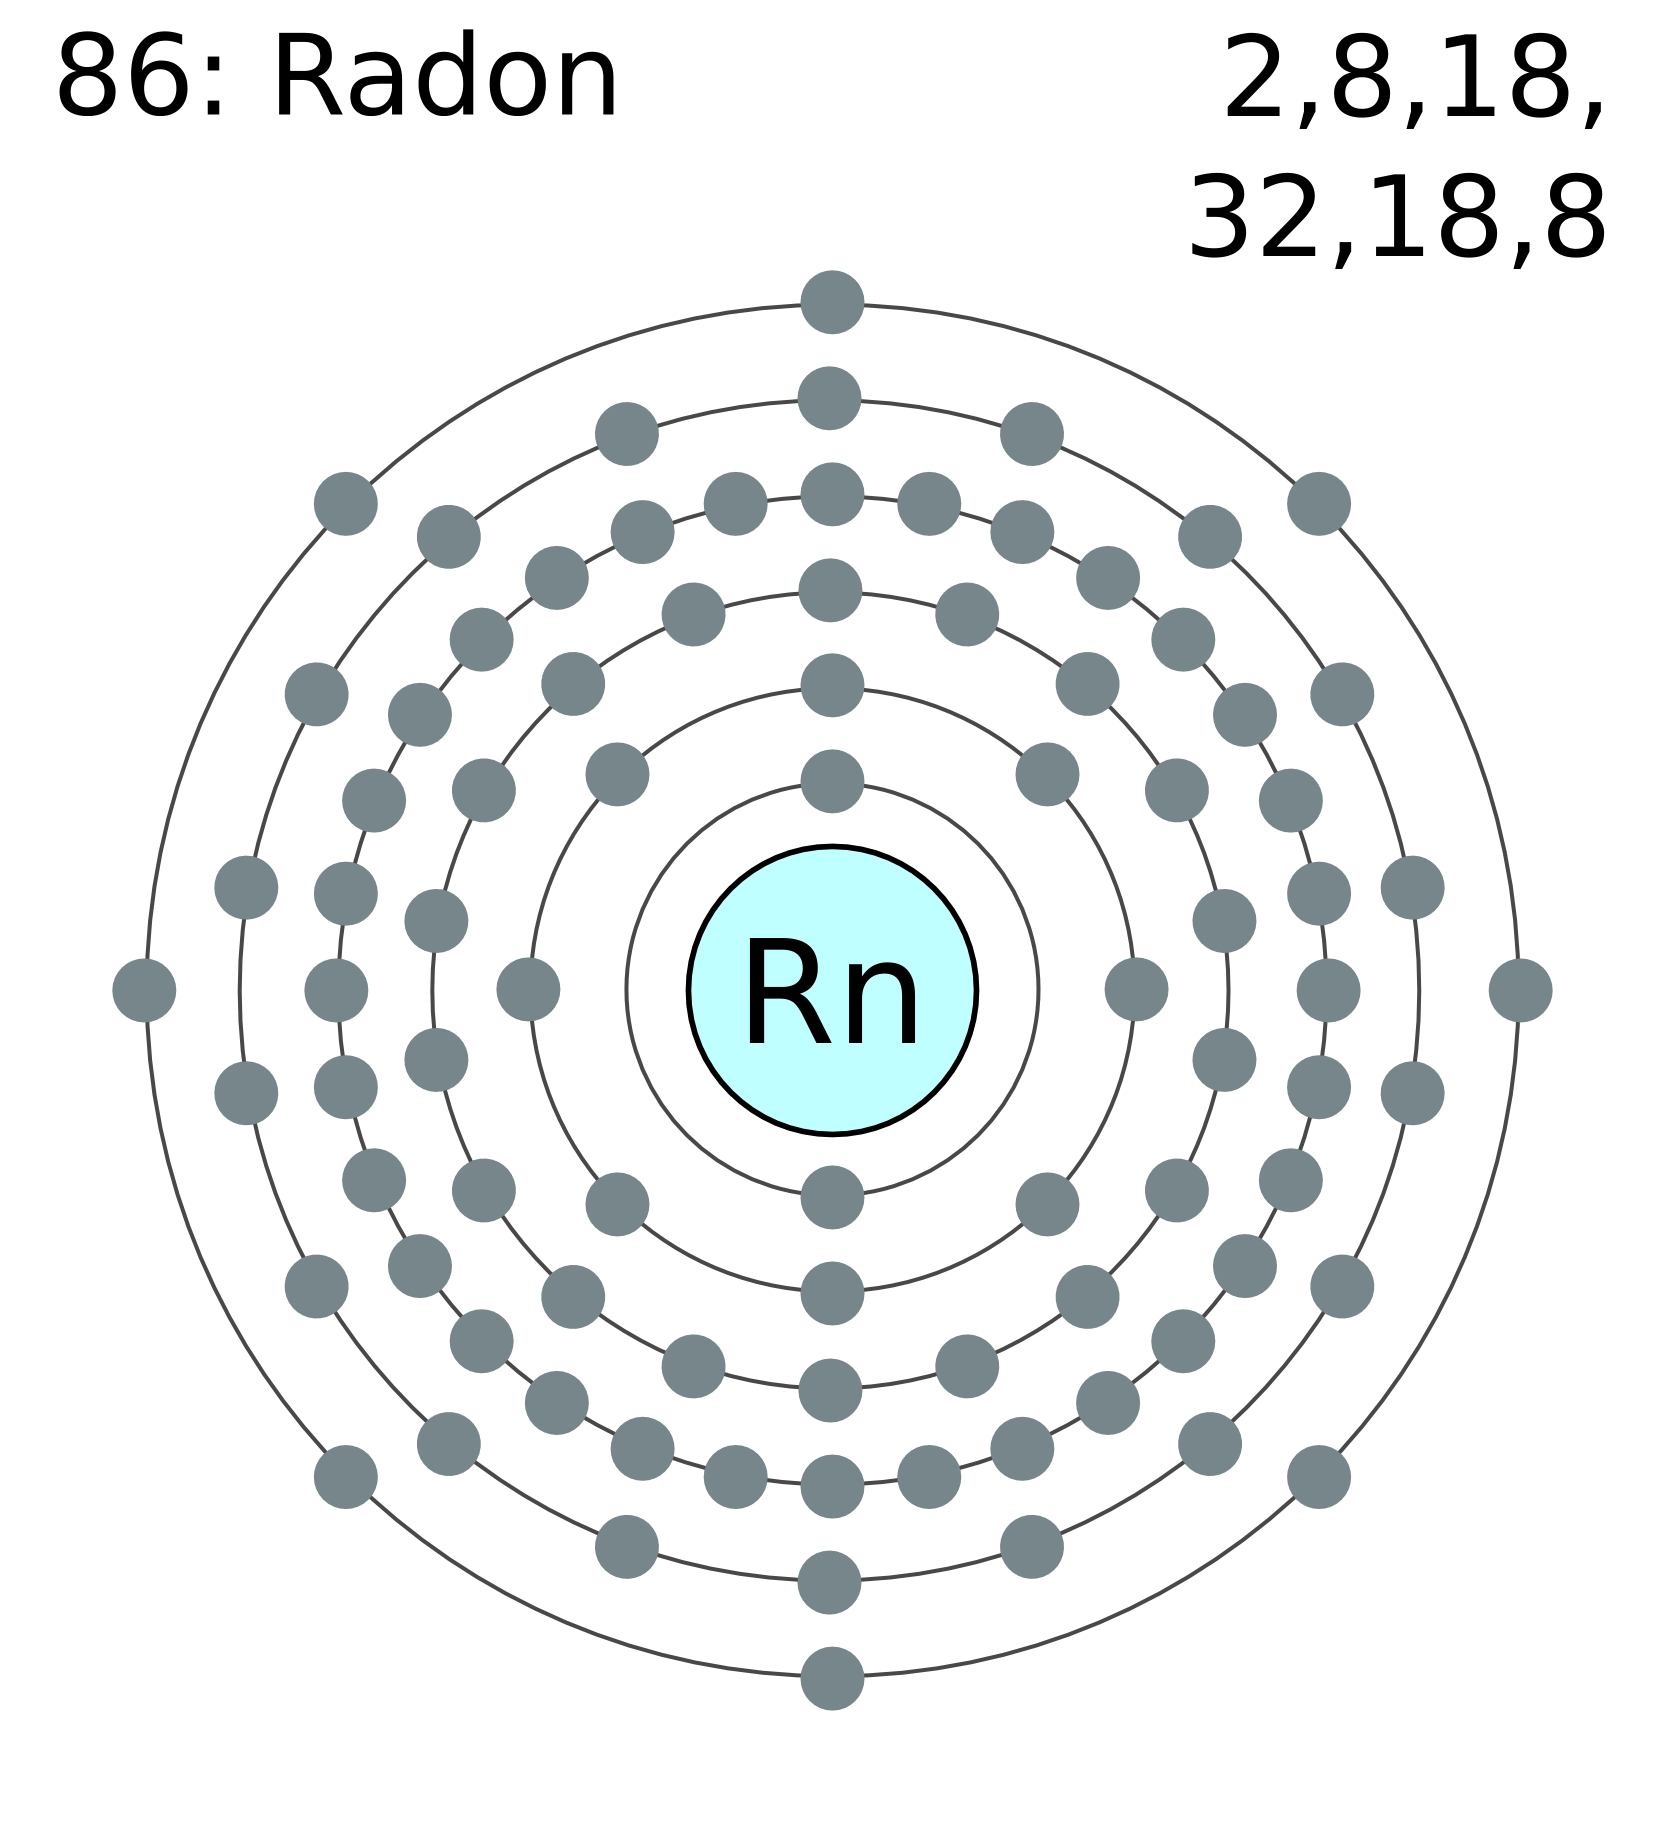 Electron_shell_086_radon file electron shell 086 radon png wikimedia commons radian diagram at bayanpartner.co